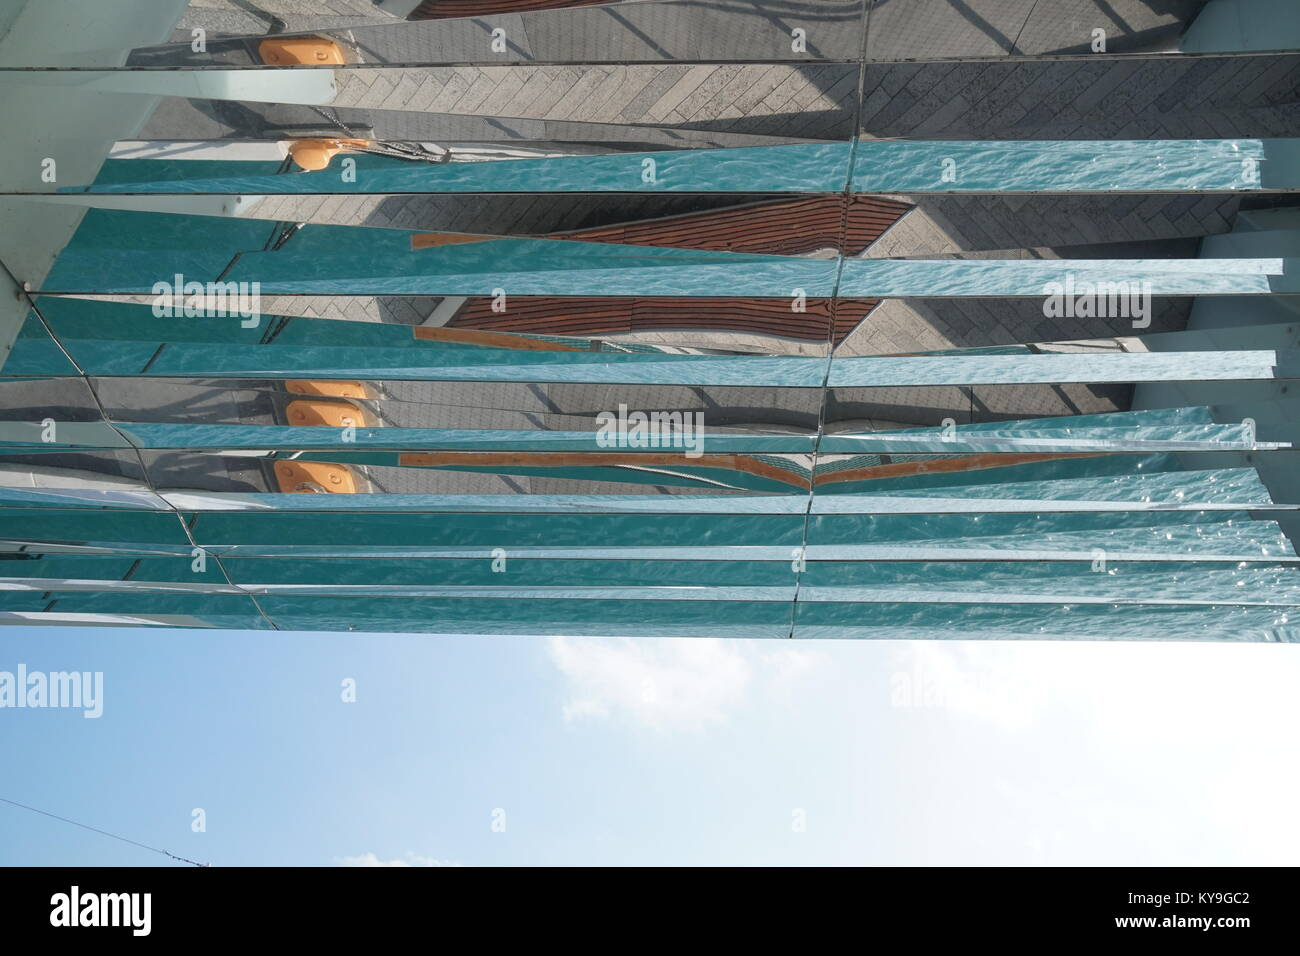 looking up at reflections in glass surface - Stock Image